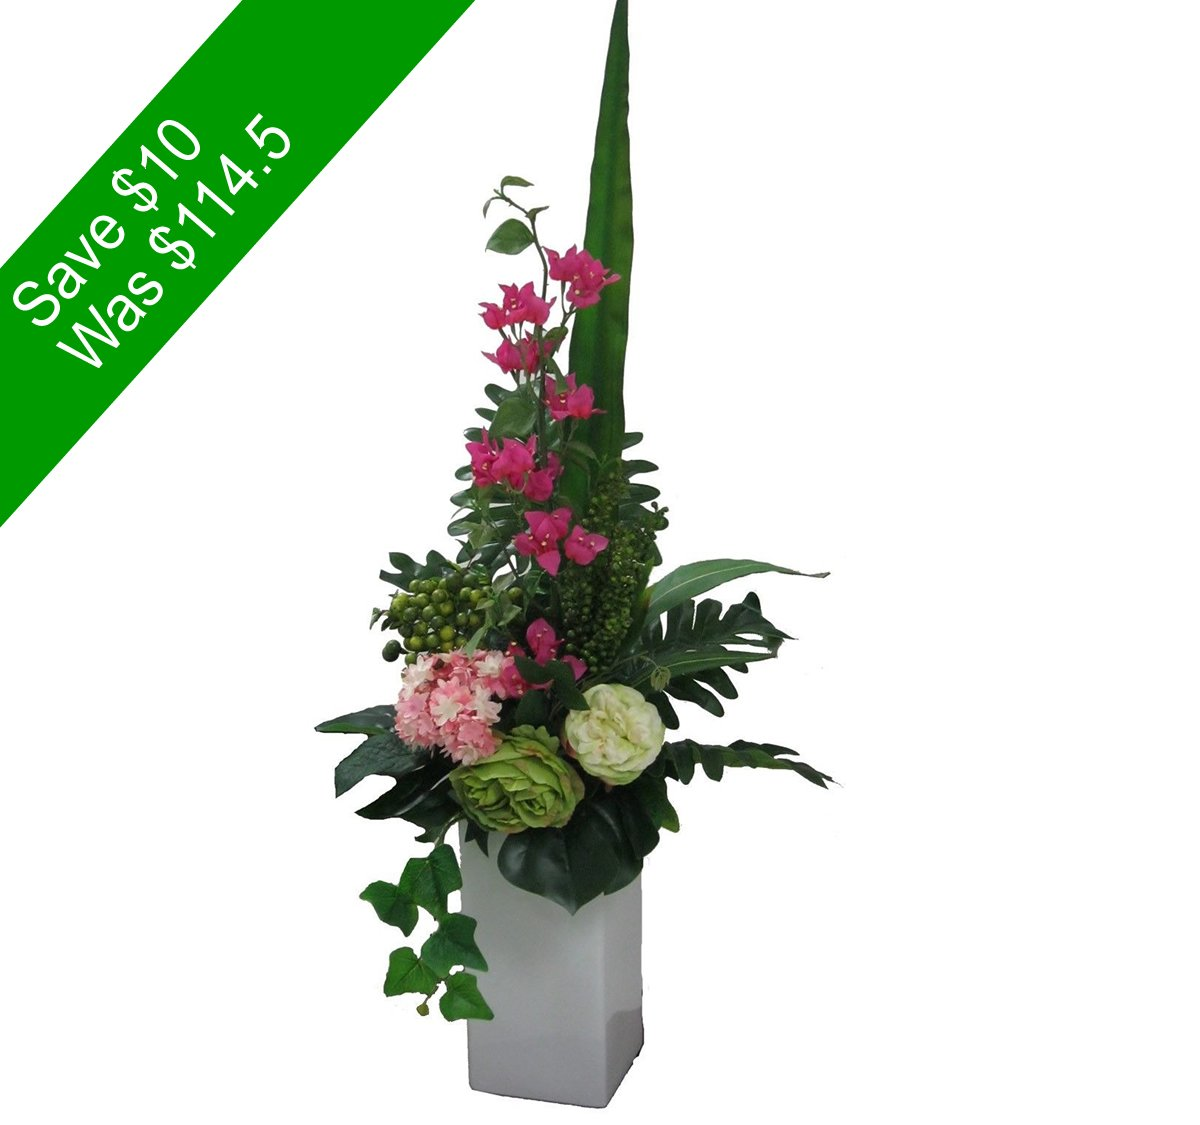 Same day flowers delivery sydney same day flower delivery by httpsangkorflowerswp contentuploads201511artificial flowers green and pink tall vase arrangement save10 for home decor or giftingg izmirmasajfo Gallery